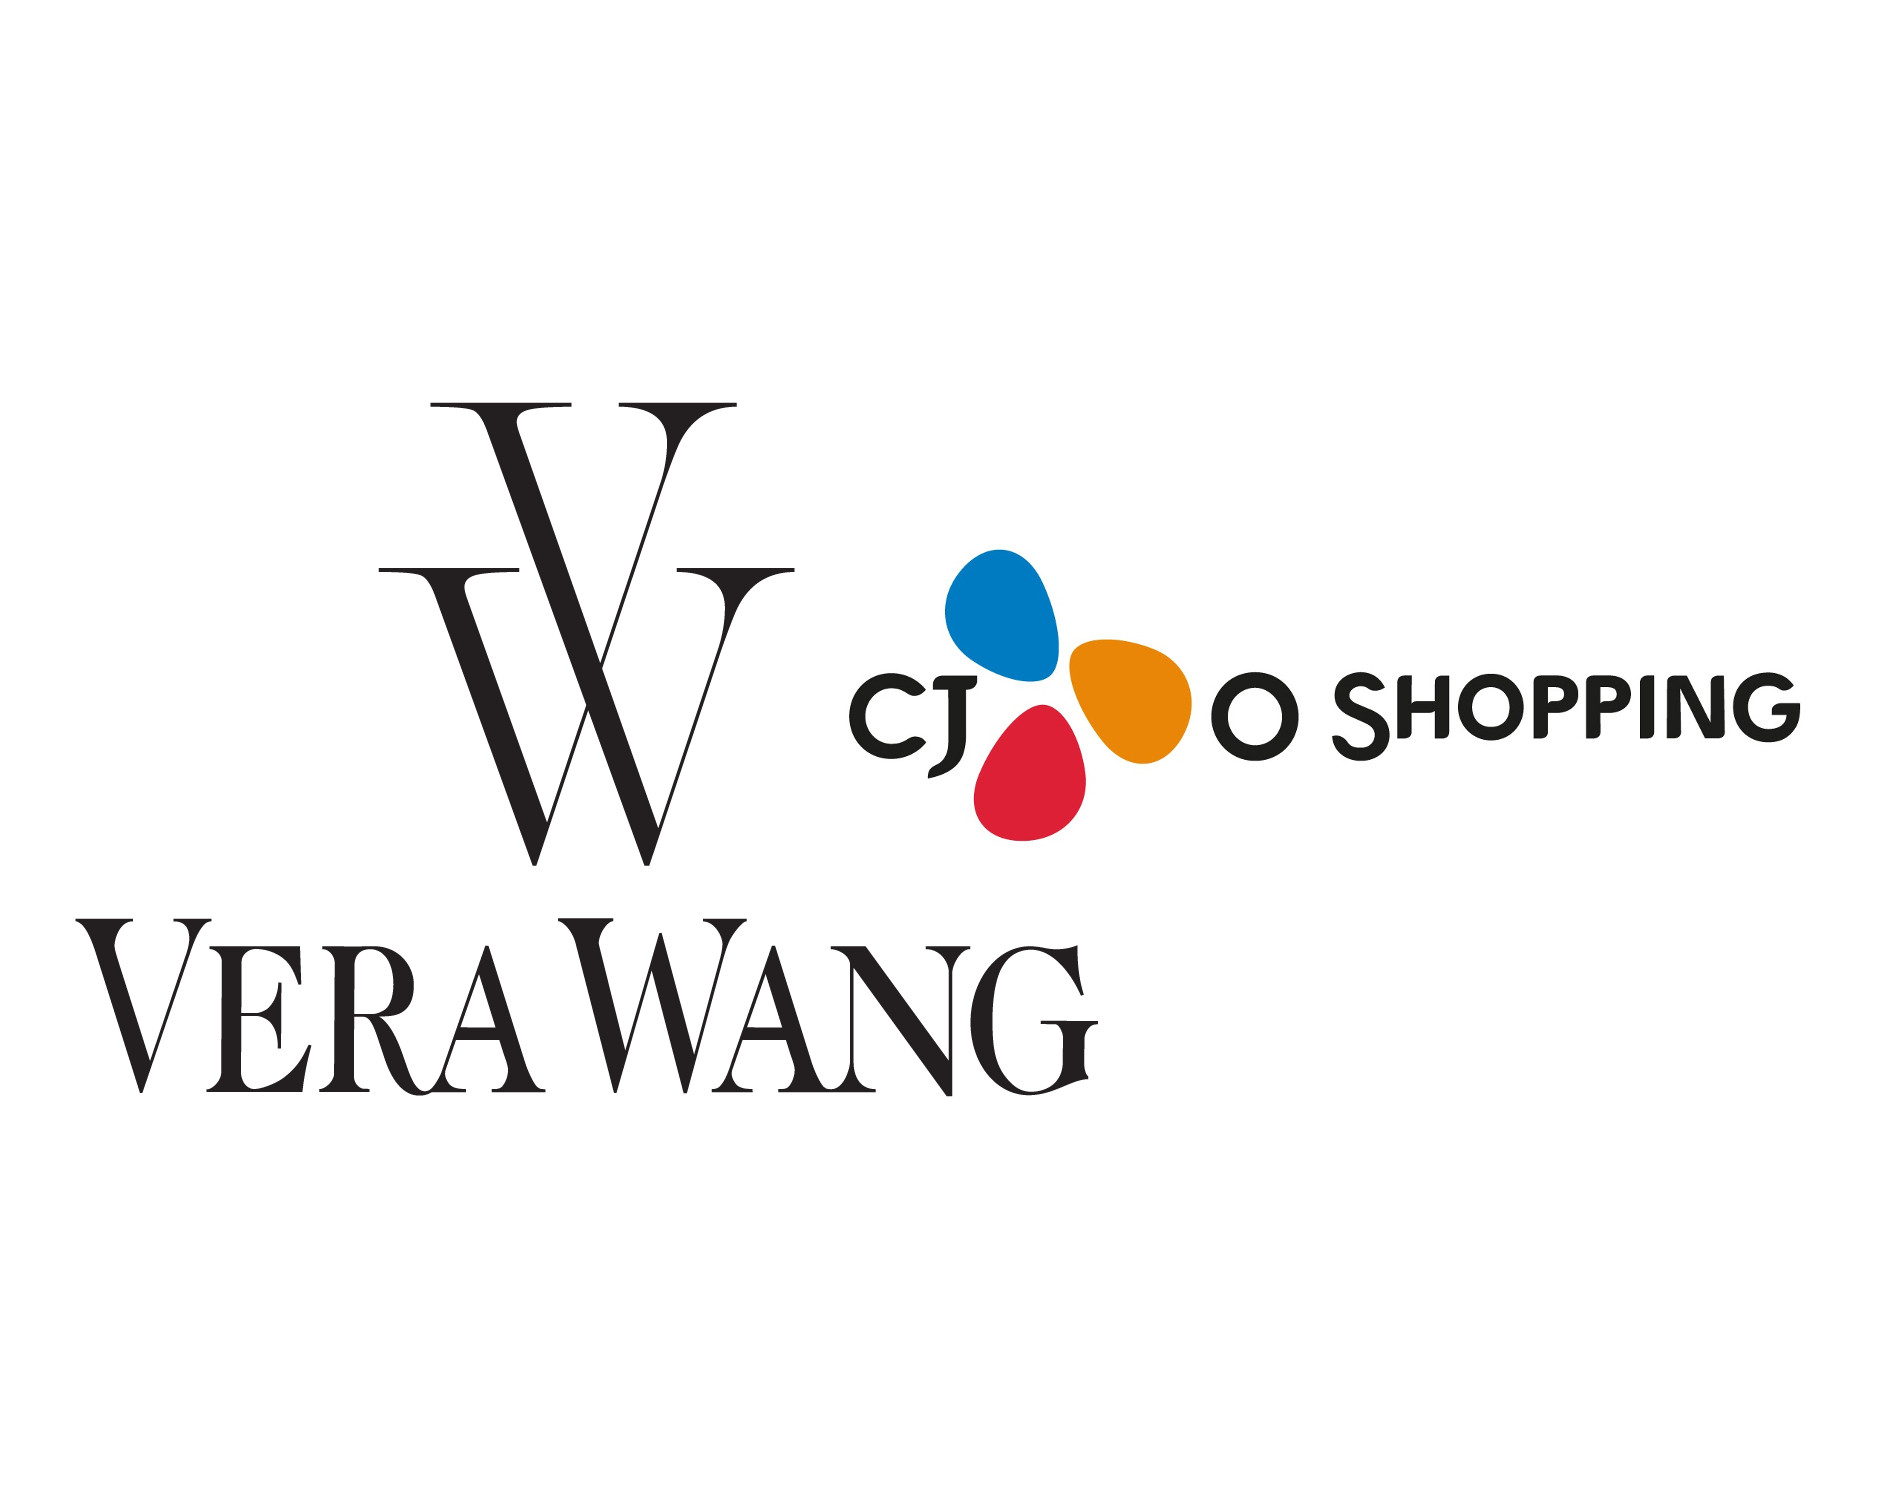 Korean Home Shopping Reaches Out to Global Fashion Business ...